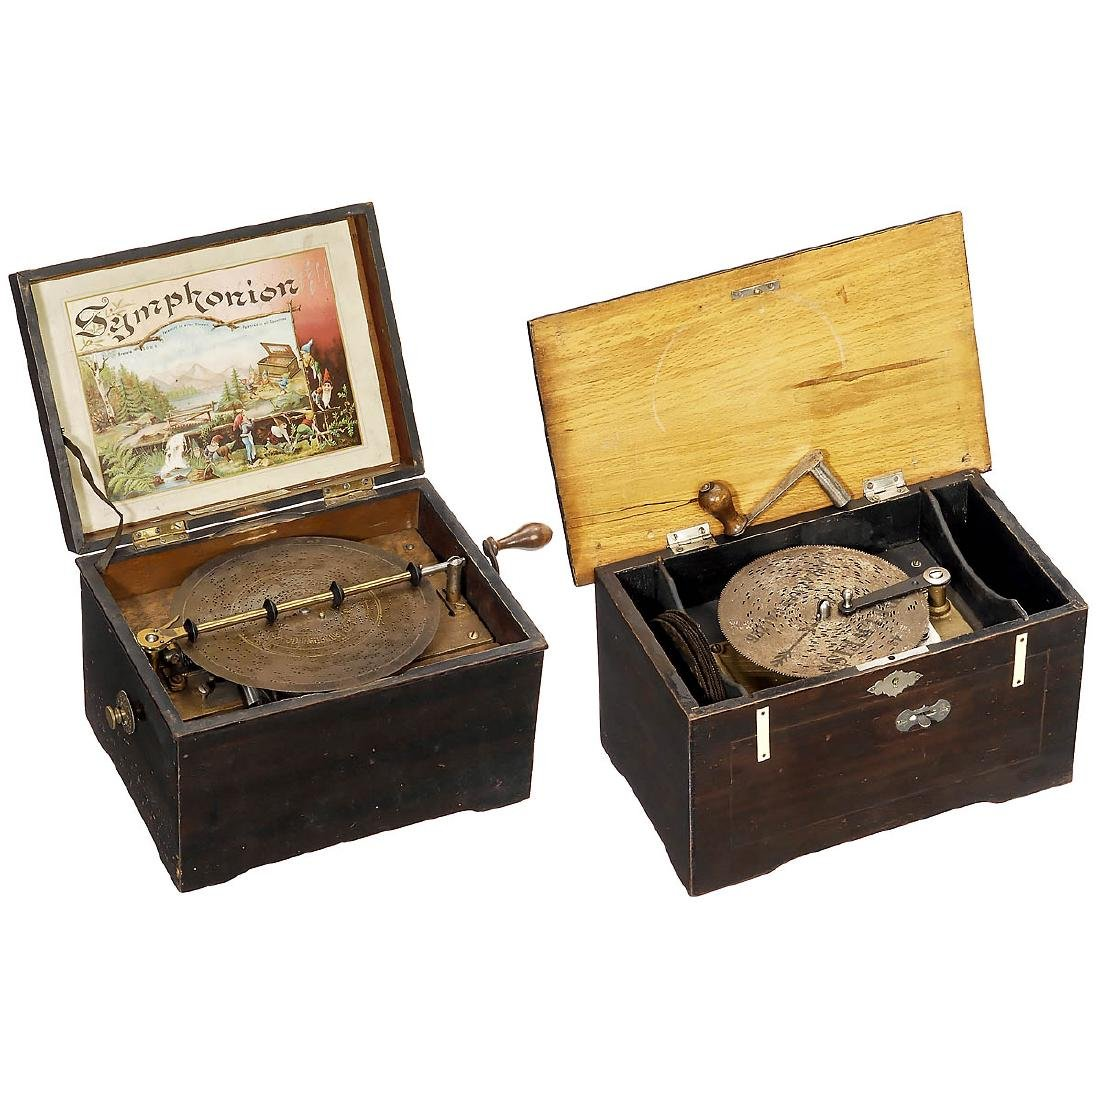 2 Disc Musical Boxes for Restoration/Parts, c. 1900